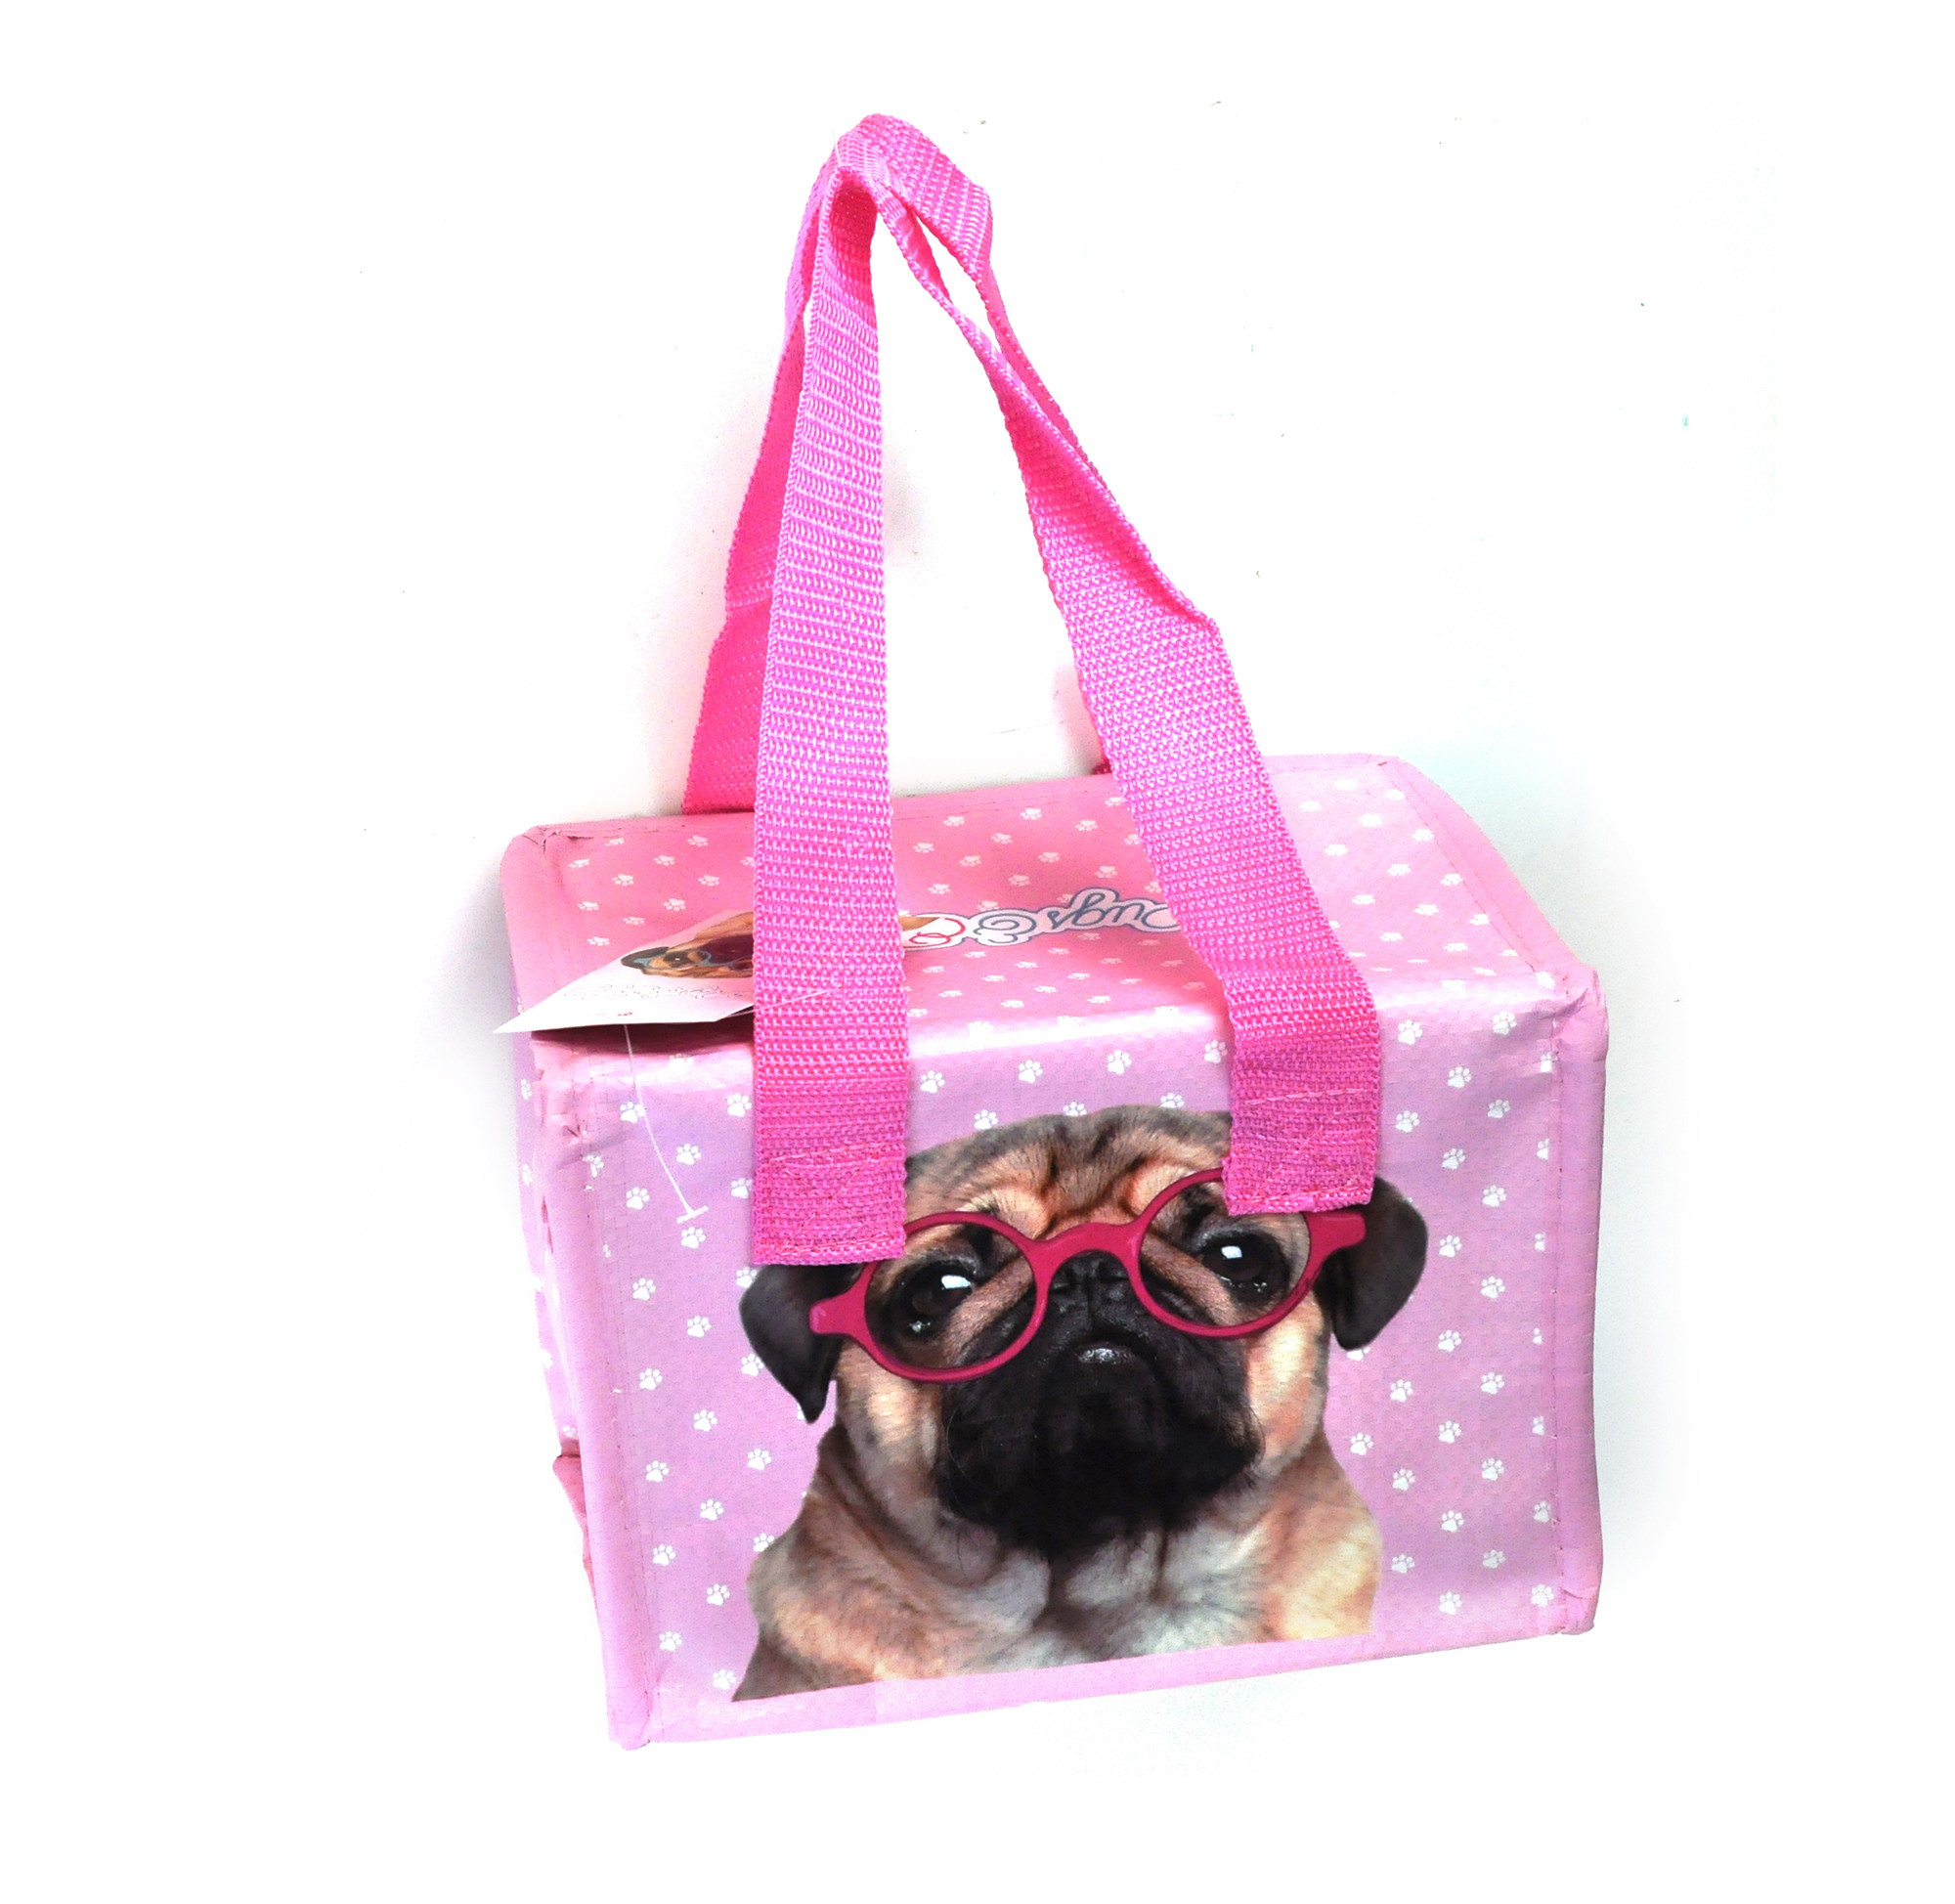 Pug Insulated Lunch Box Bag Pink Cat Shop